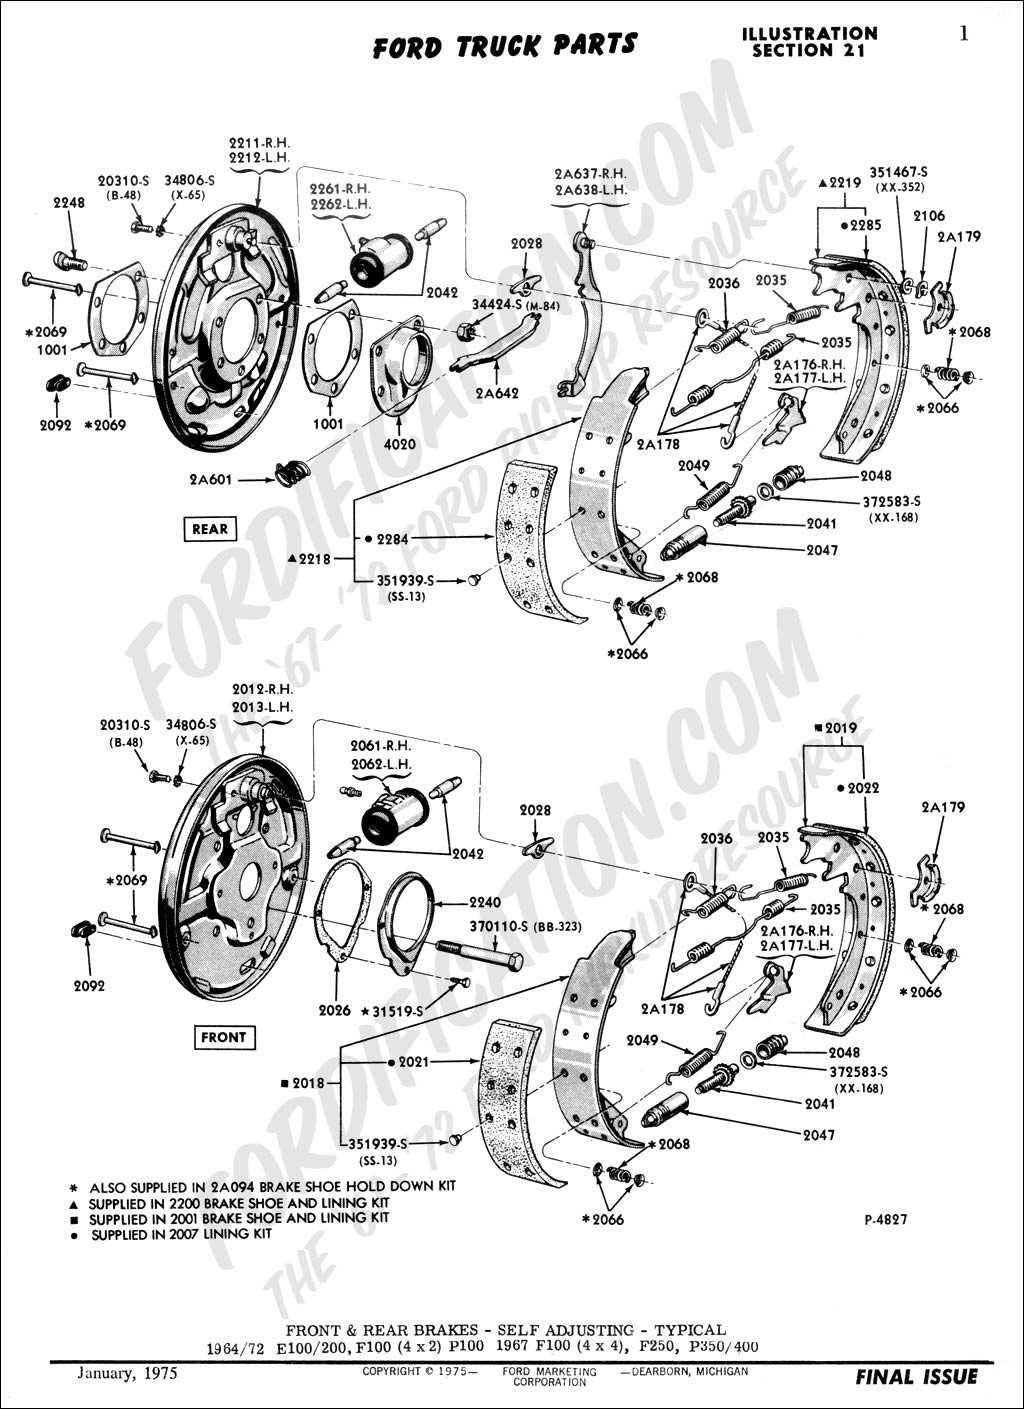 where can i get a diagram for the rear brakes on a 70 ford f100